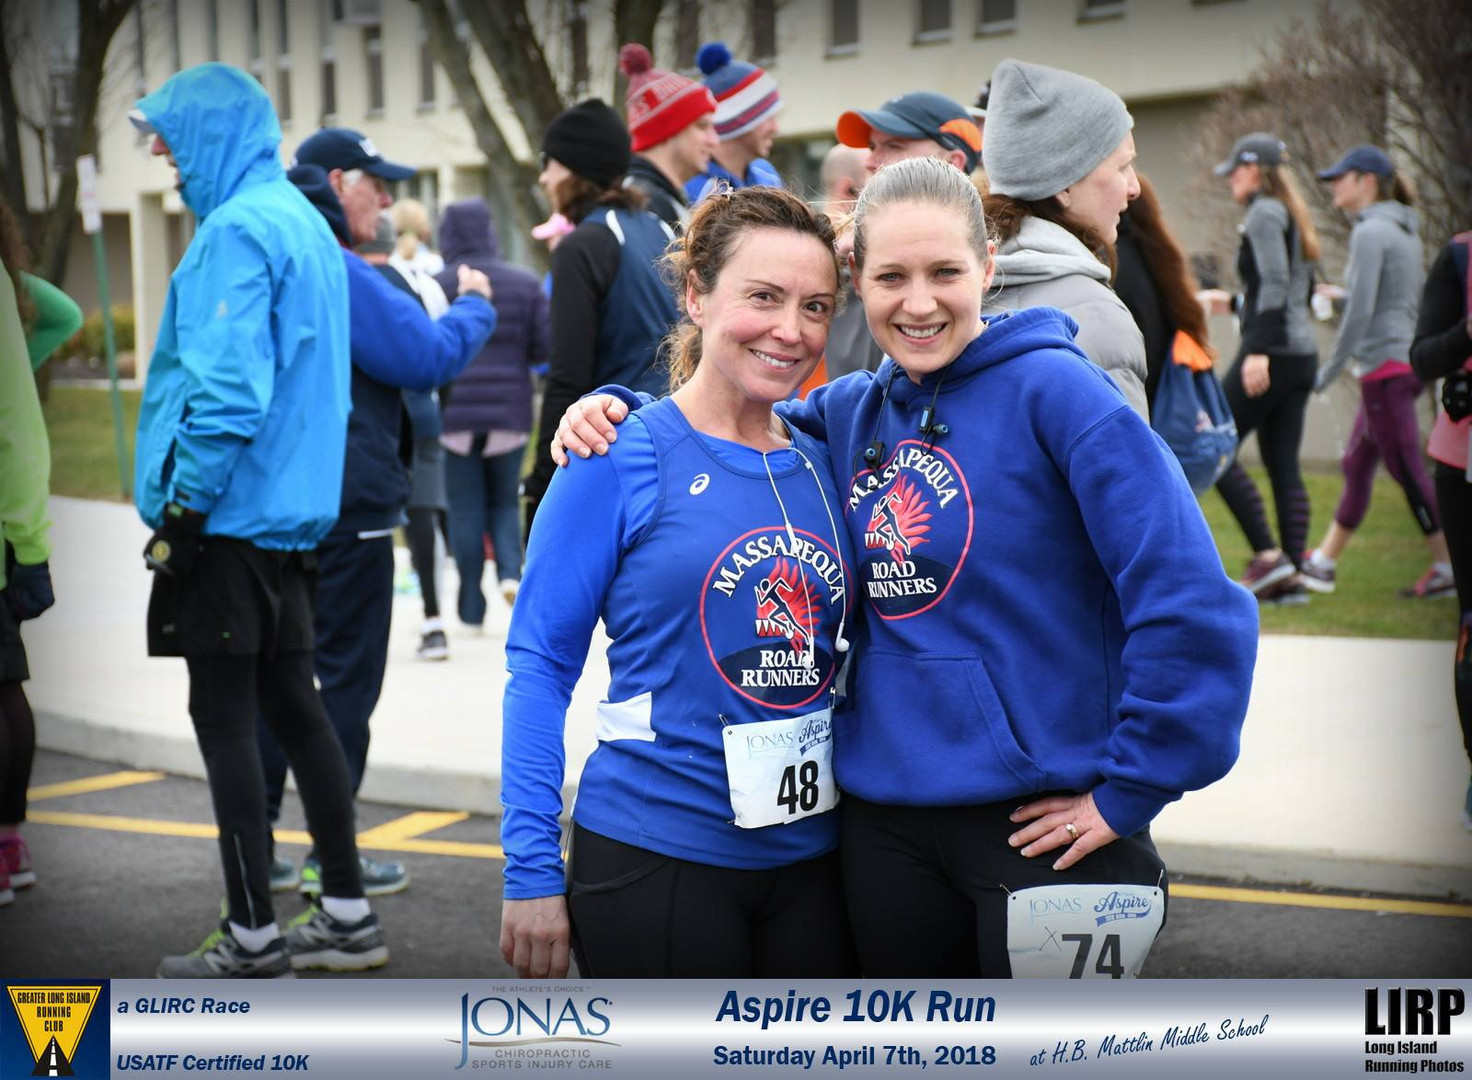 Aspire10K-2018-finishers.jpg